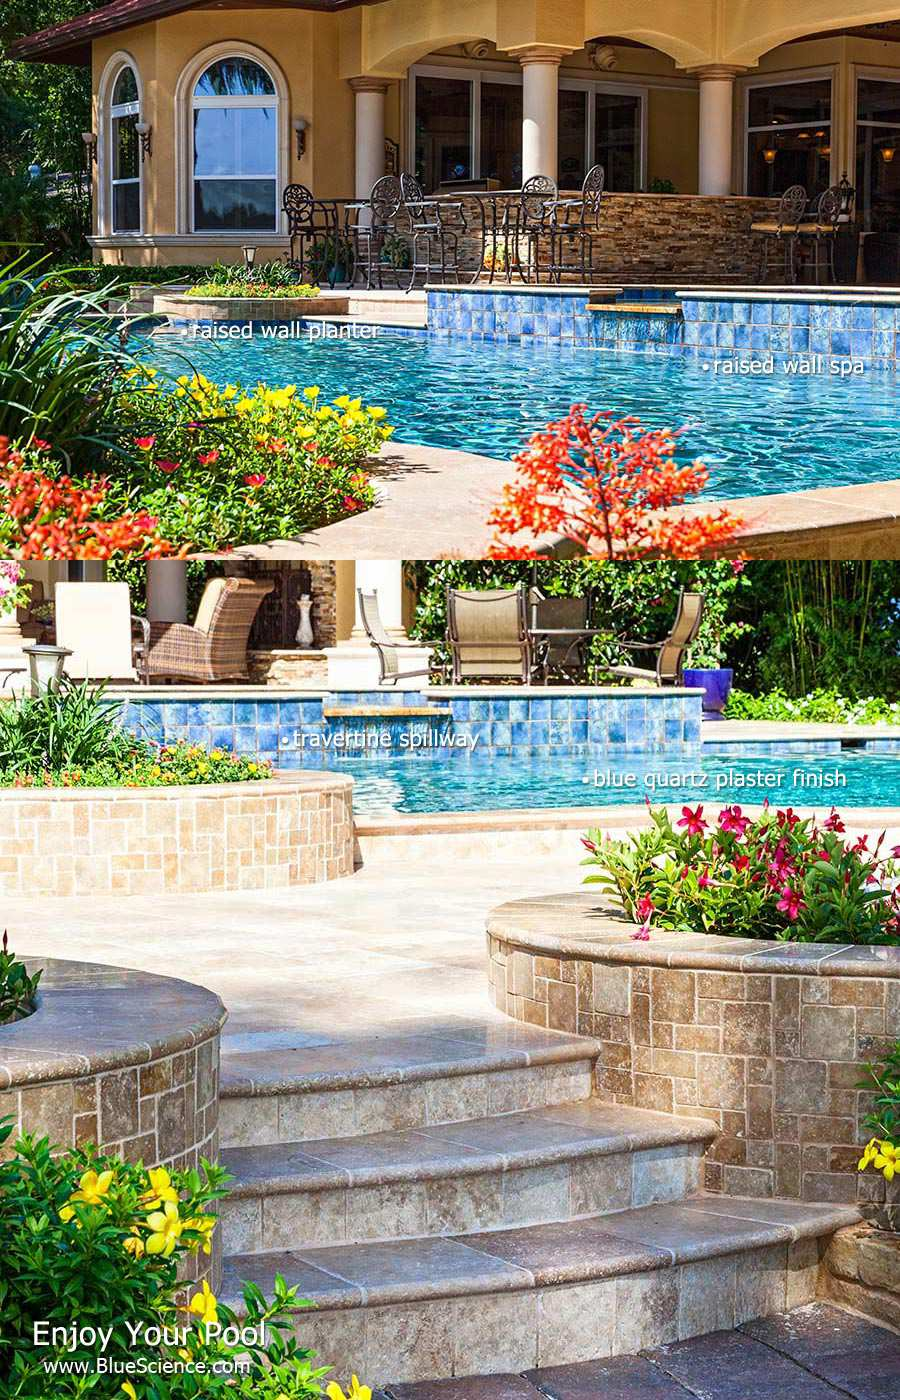 Pool Design Dallas pool feature highlights Pool Feature Highlights